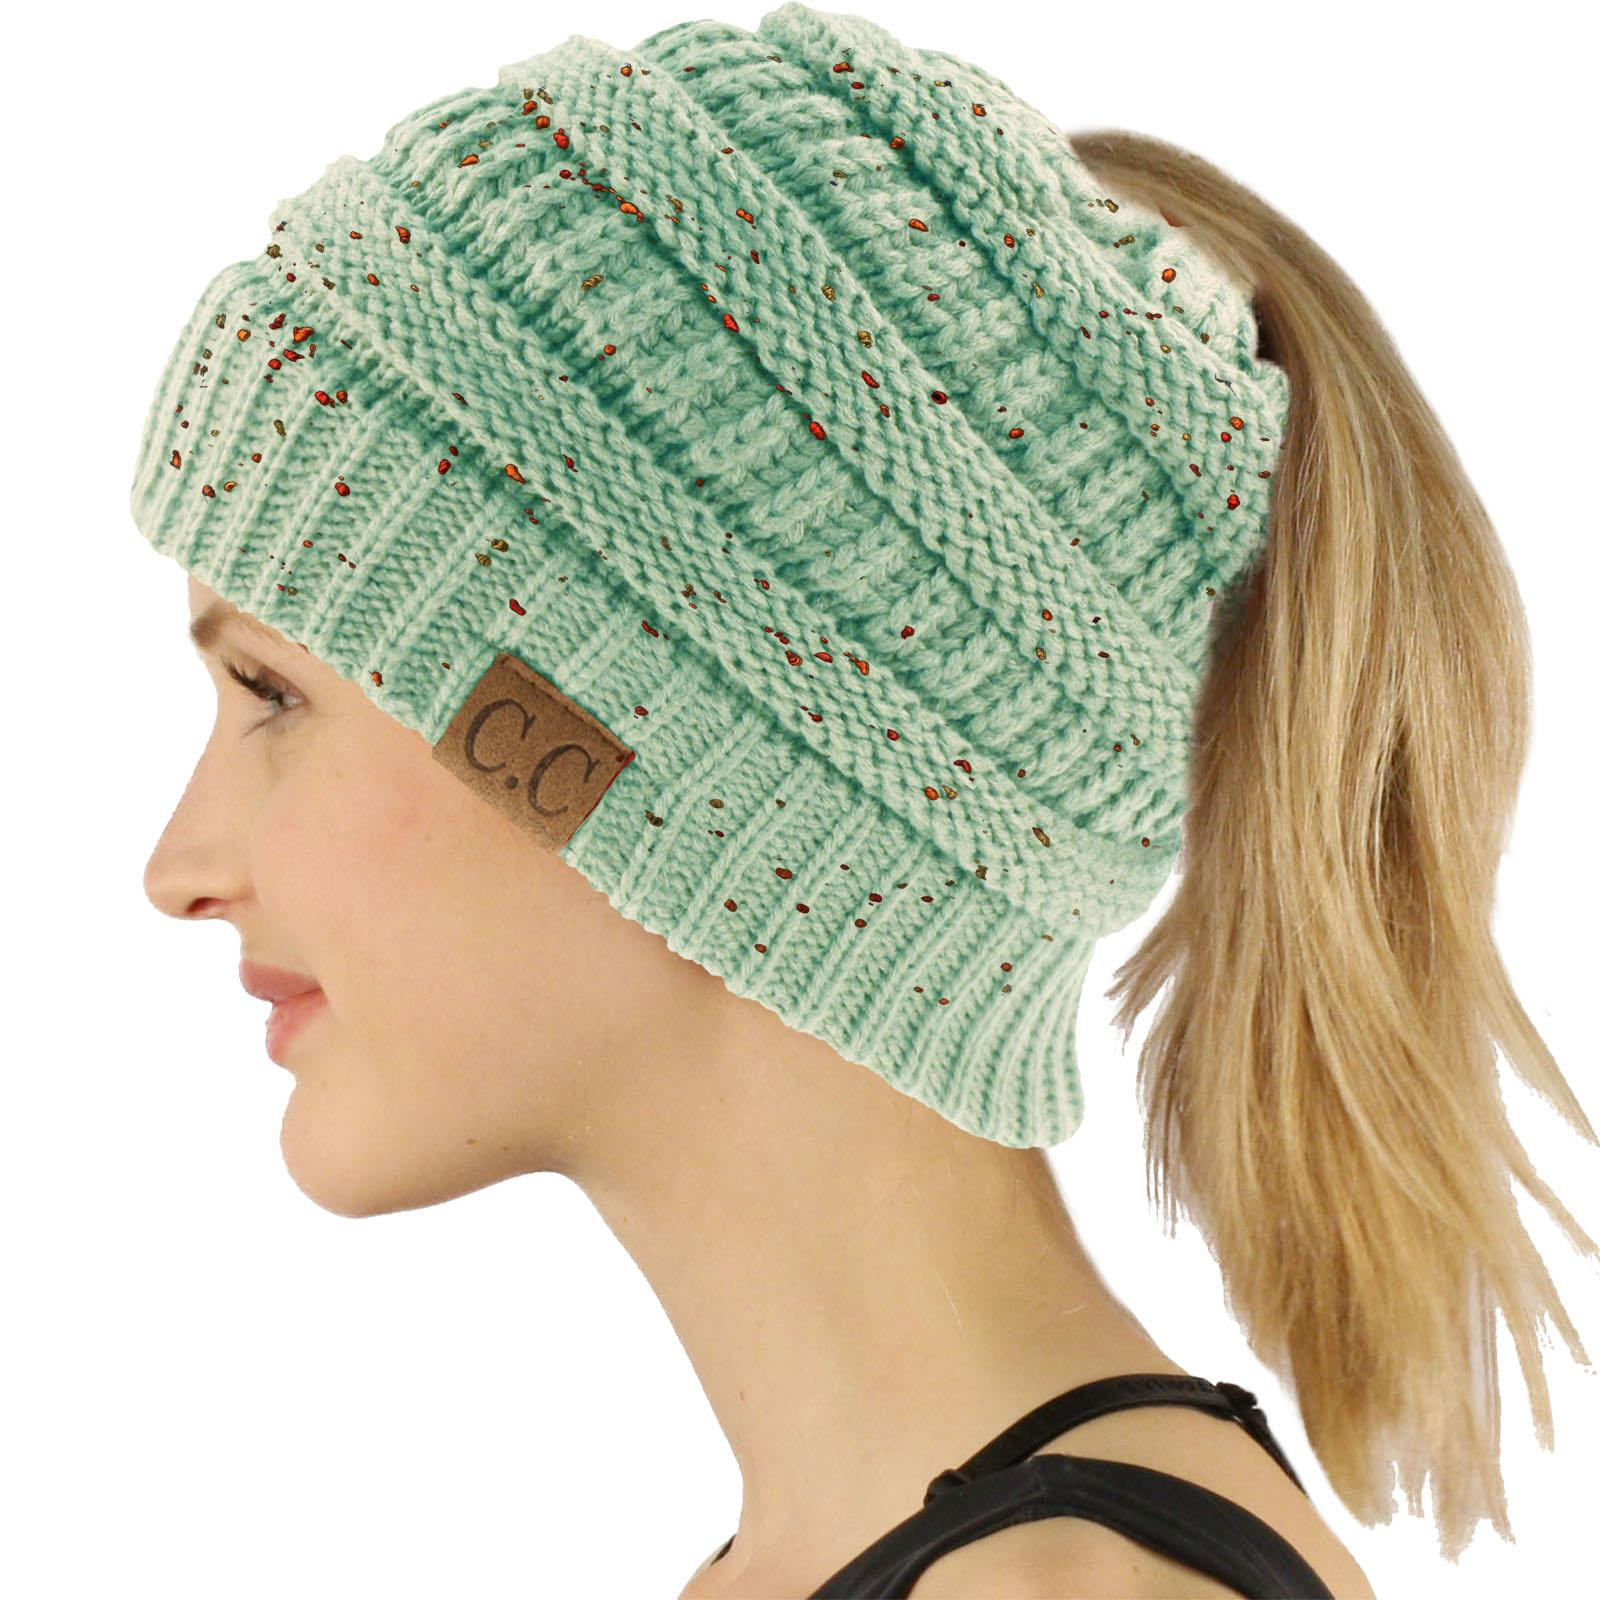 Messy Bun Beanie Hat Best Of Cc Beanietail Messy High Bun Ponytail Stretchy Knit Beanie Of Brilliant 47 Photos Messy Bun Beanie Hat